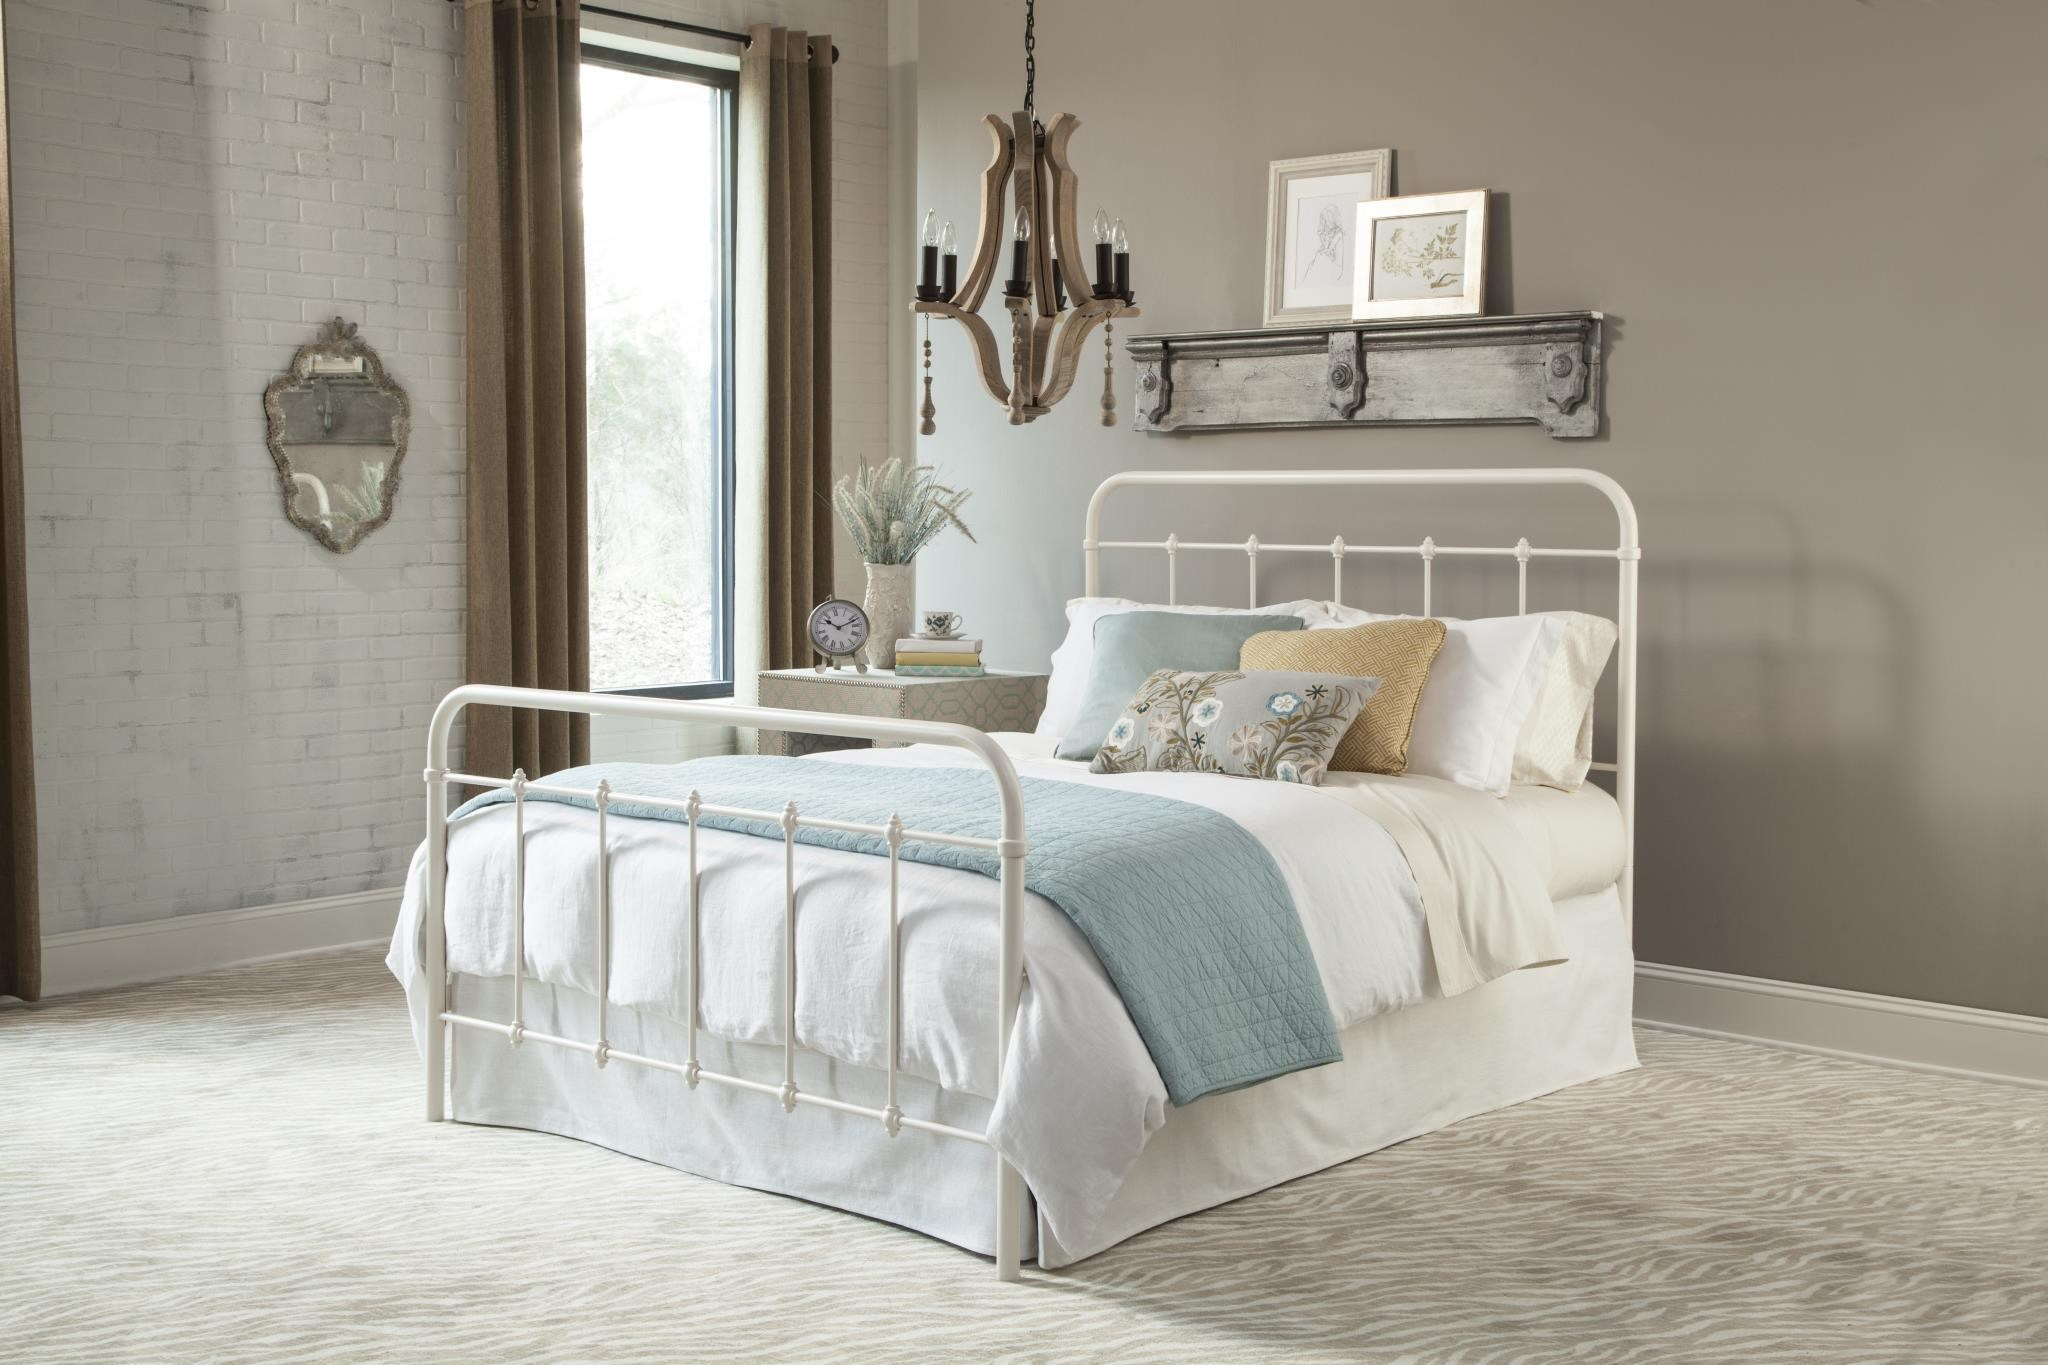 Kith Furniture 899 White Full Metal Bed - Item Number: GRP-899-FULLBED